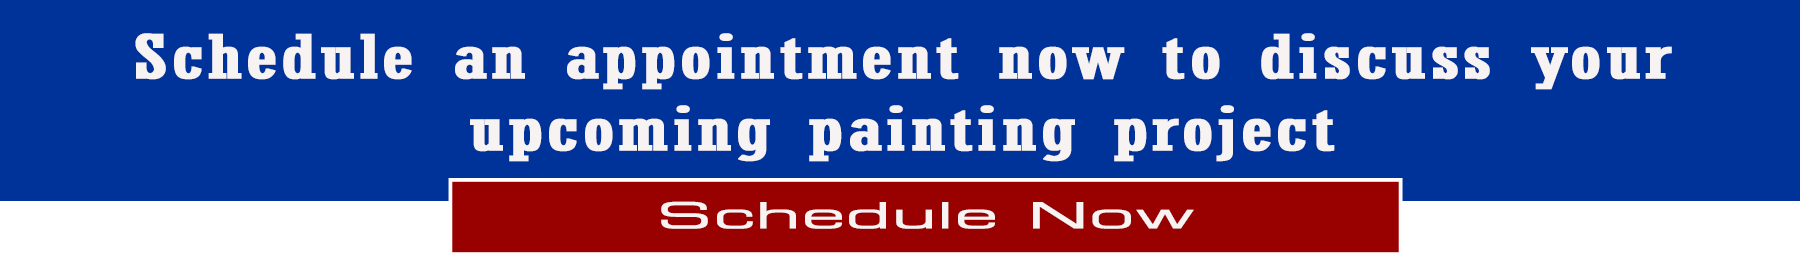 schedule-paint-apoitment